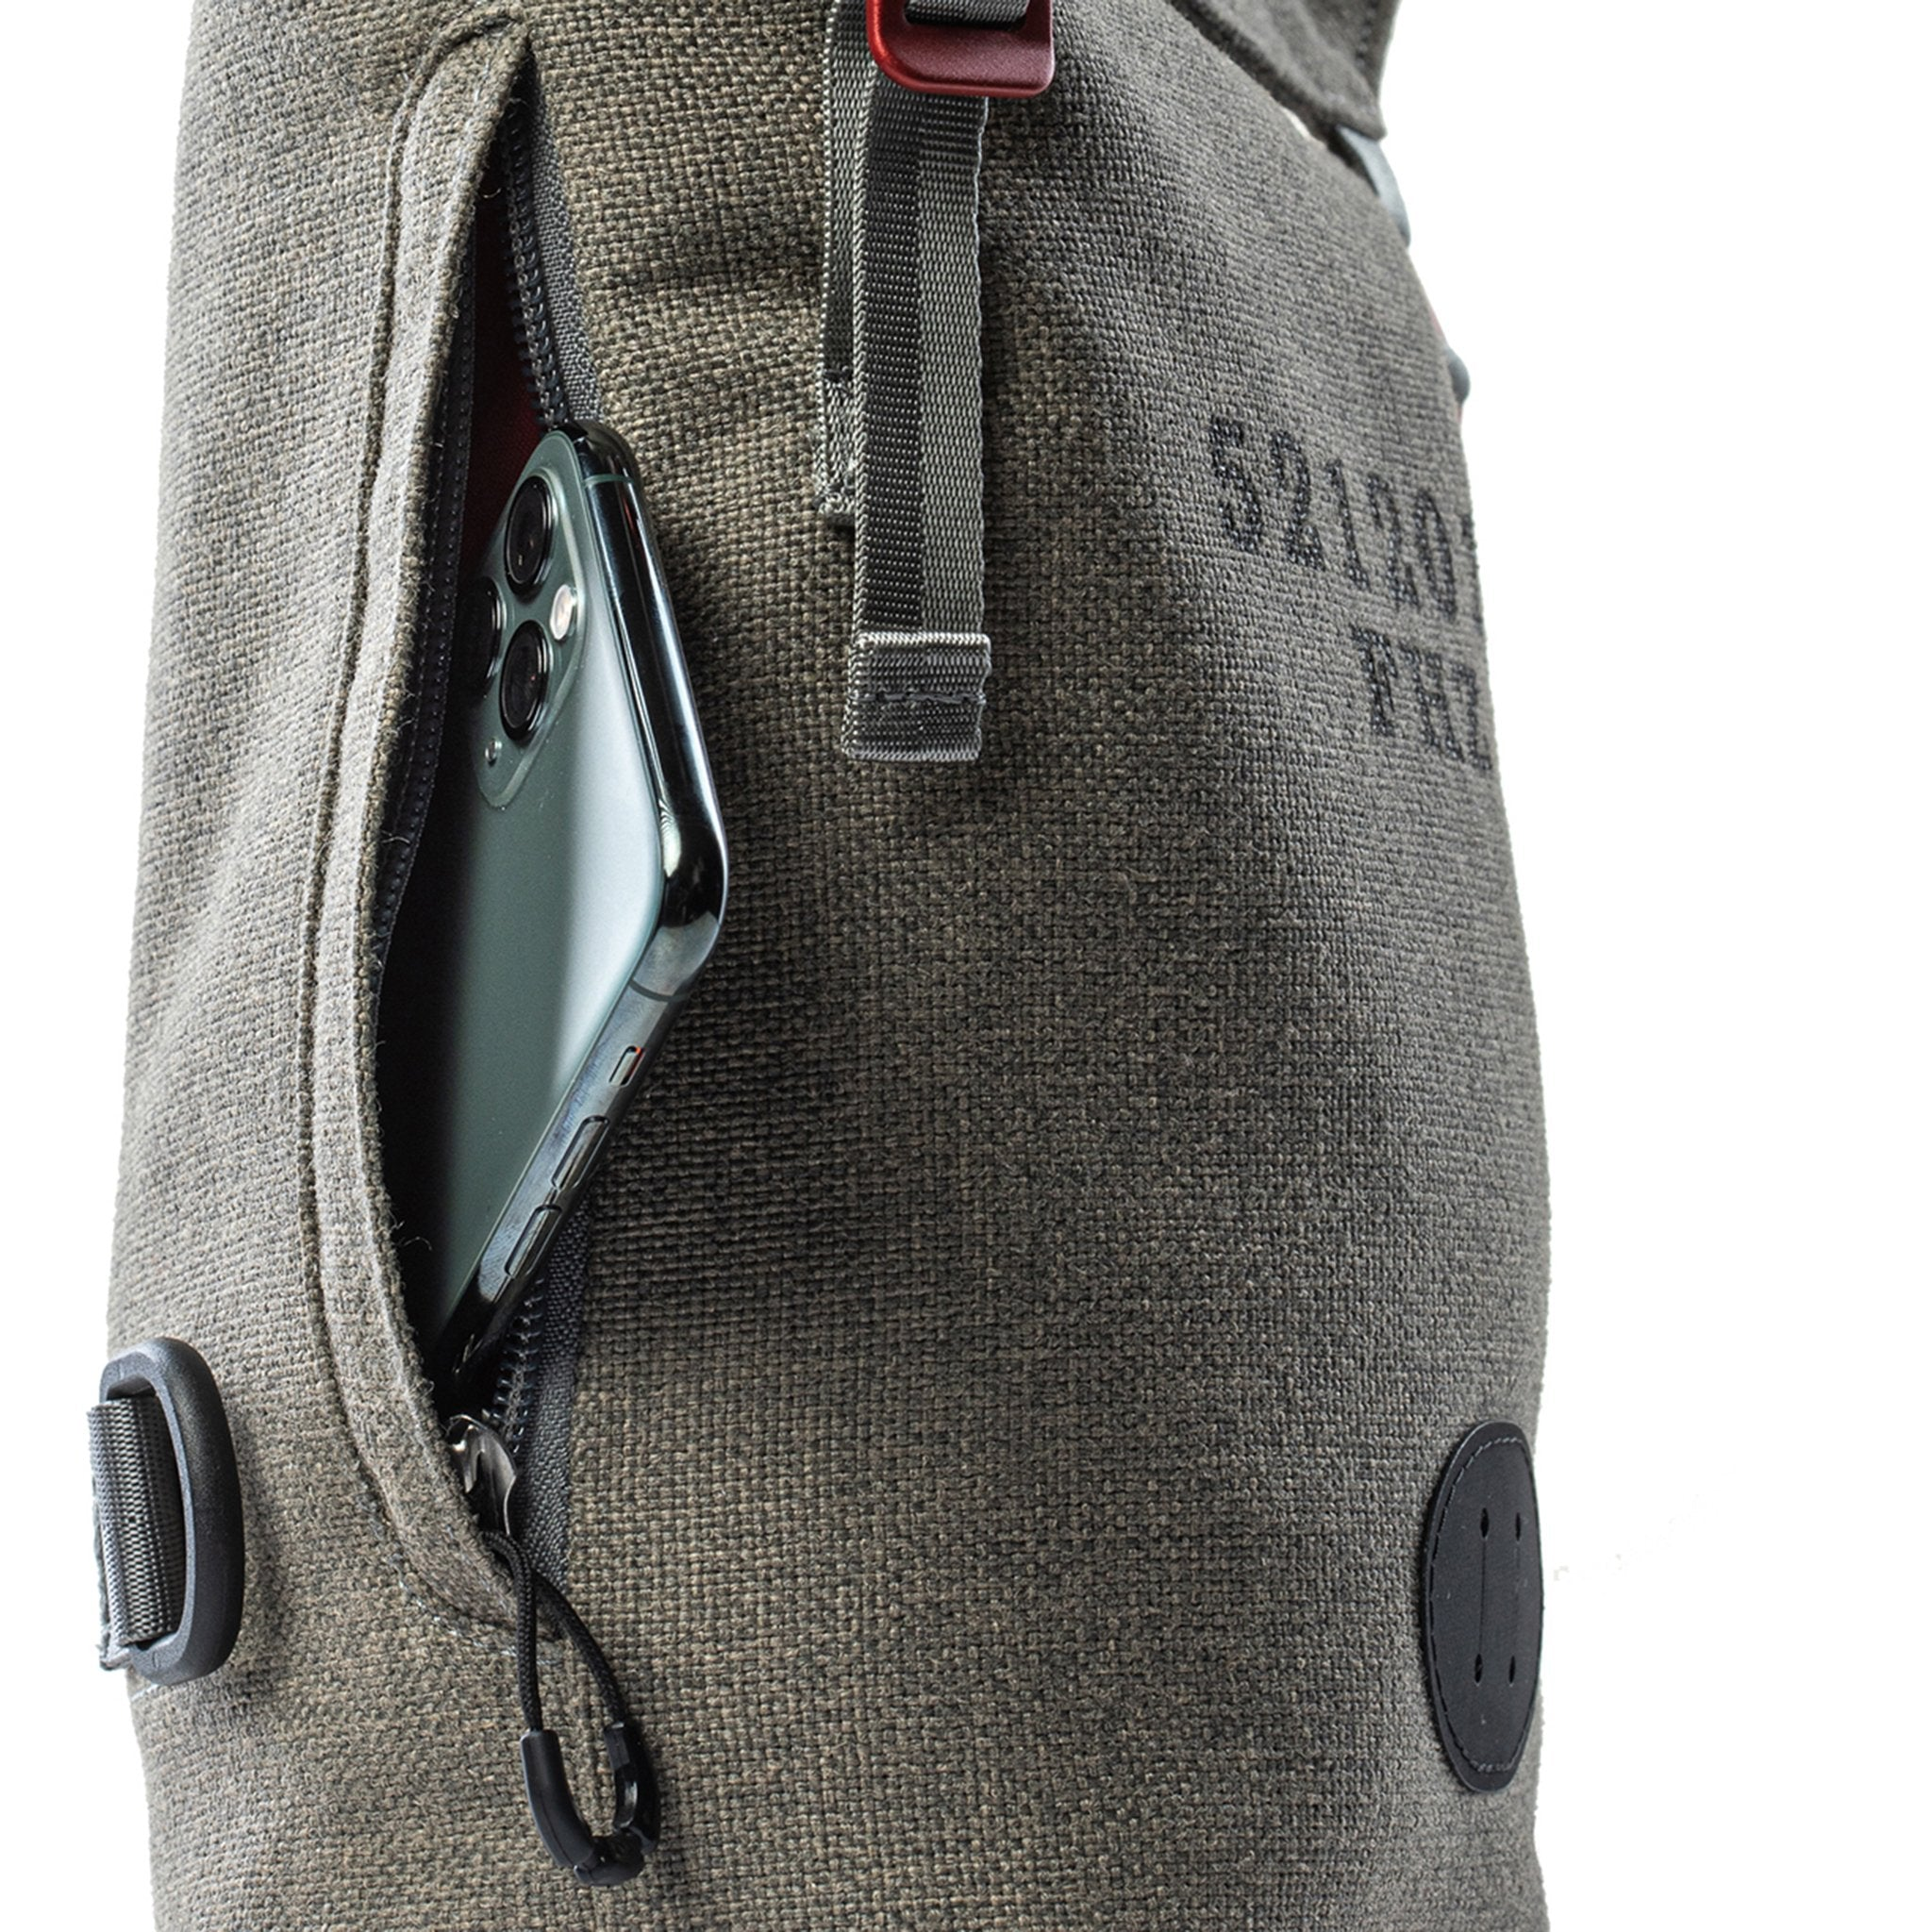 Phone zipper pouch on a Fierce Hazel gender-neutral shoulder bag and convertible backpack. Sling pack and camera bag